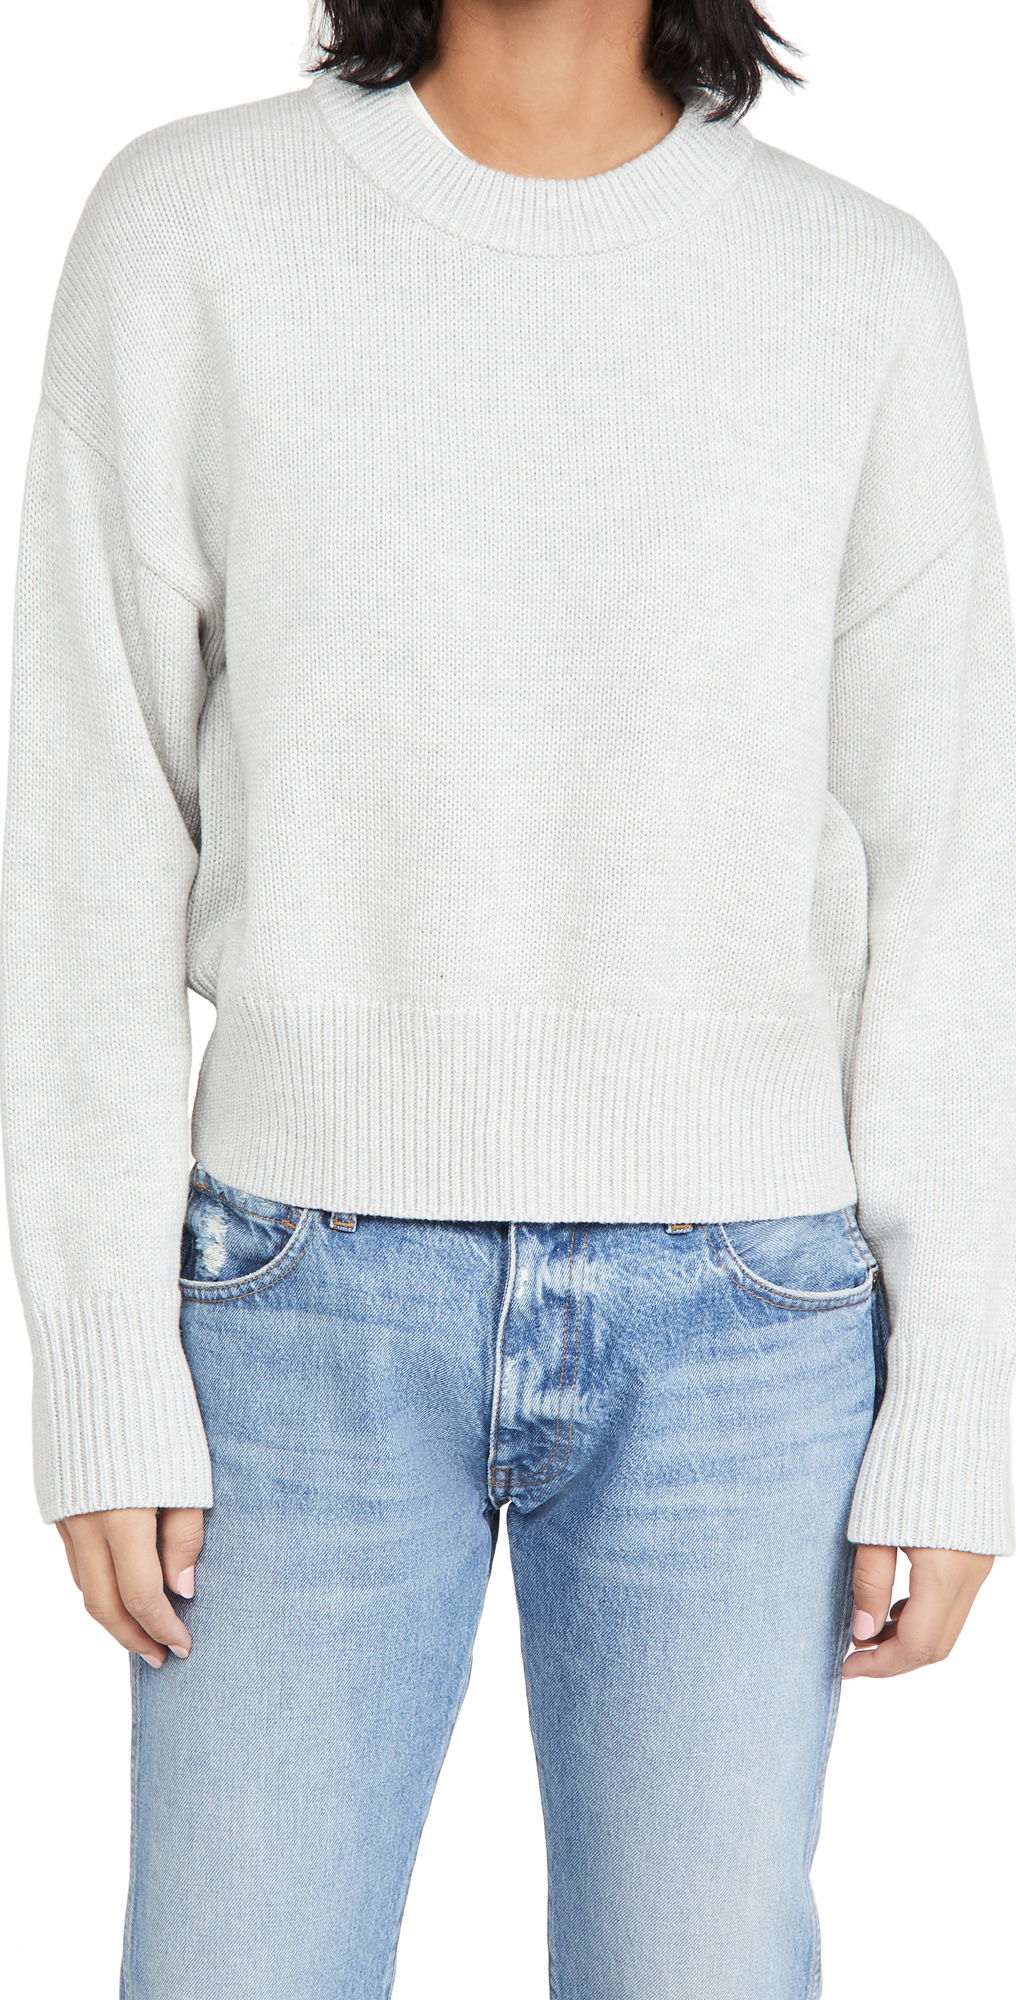 Alex Mill Cozy Crew Neck Sweater